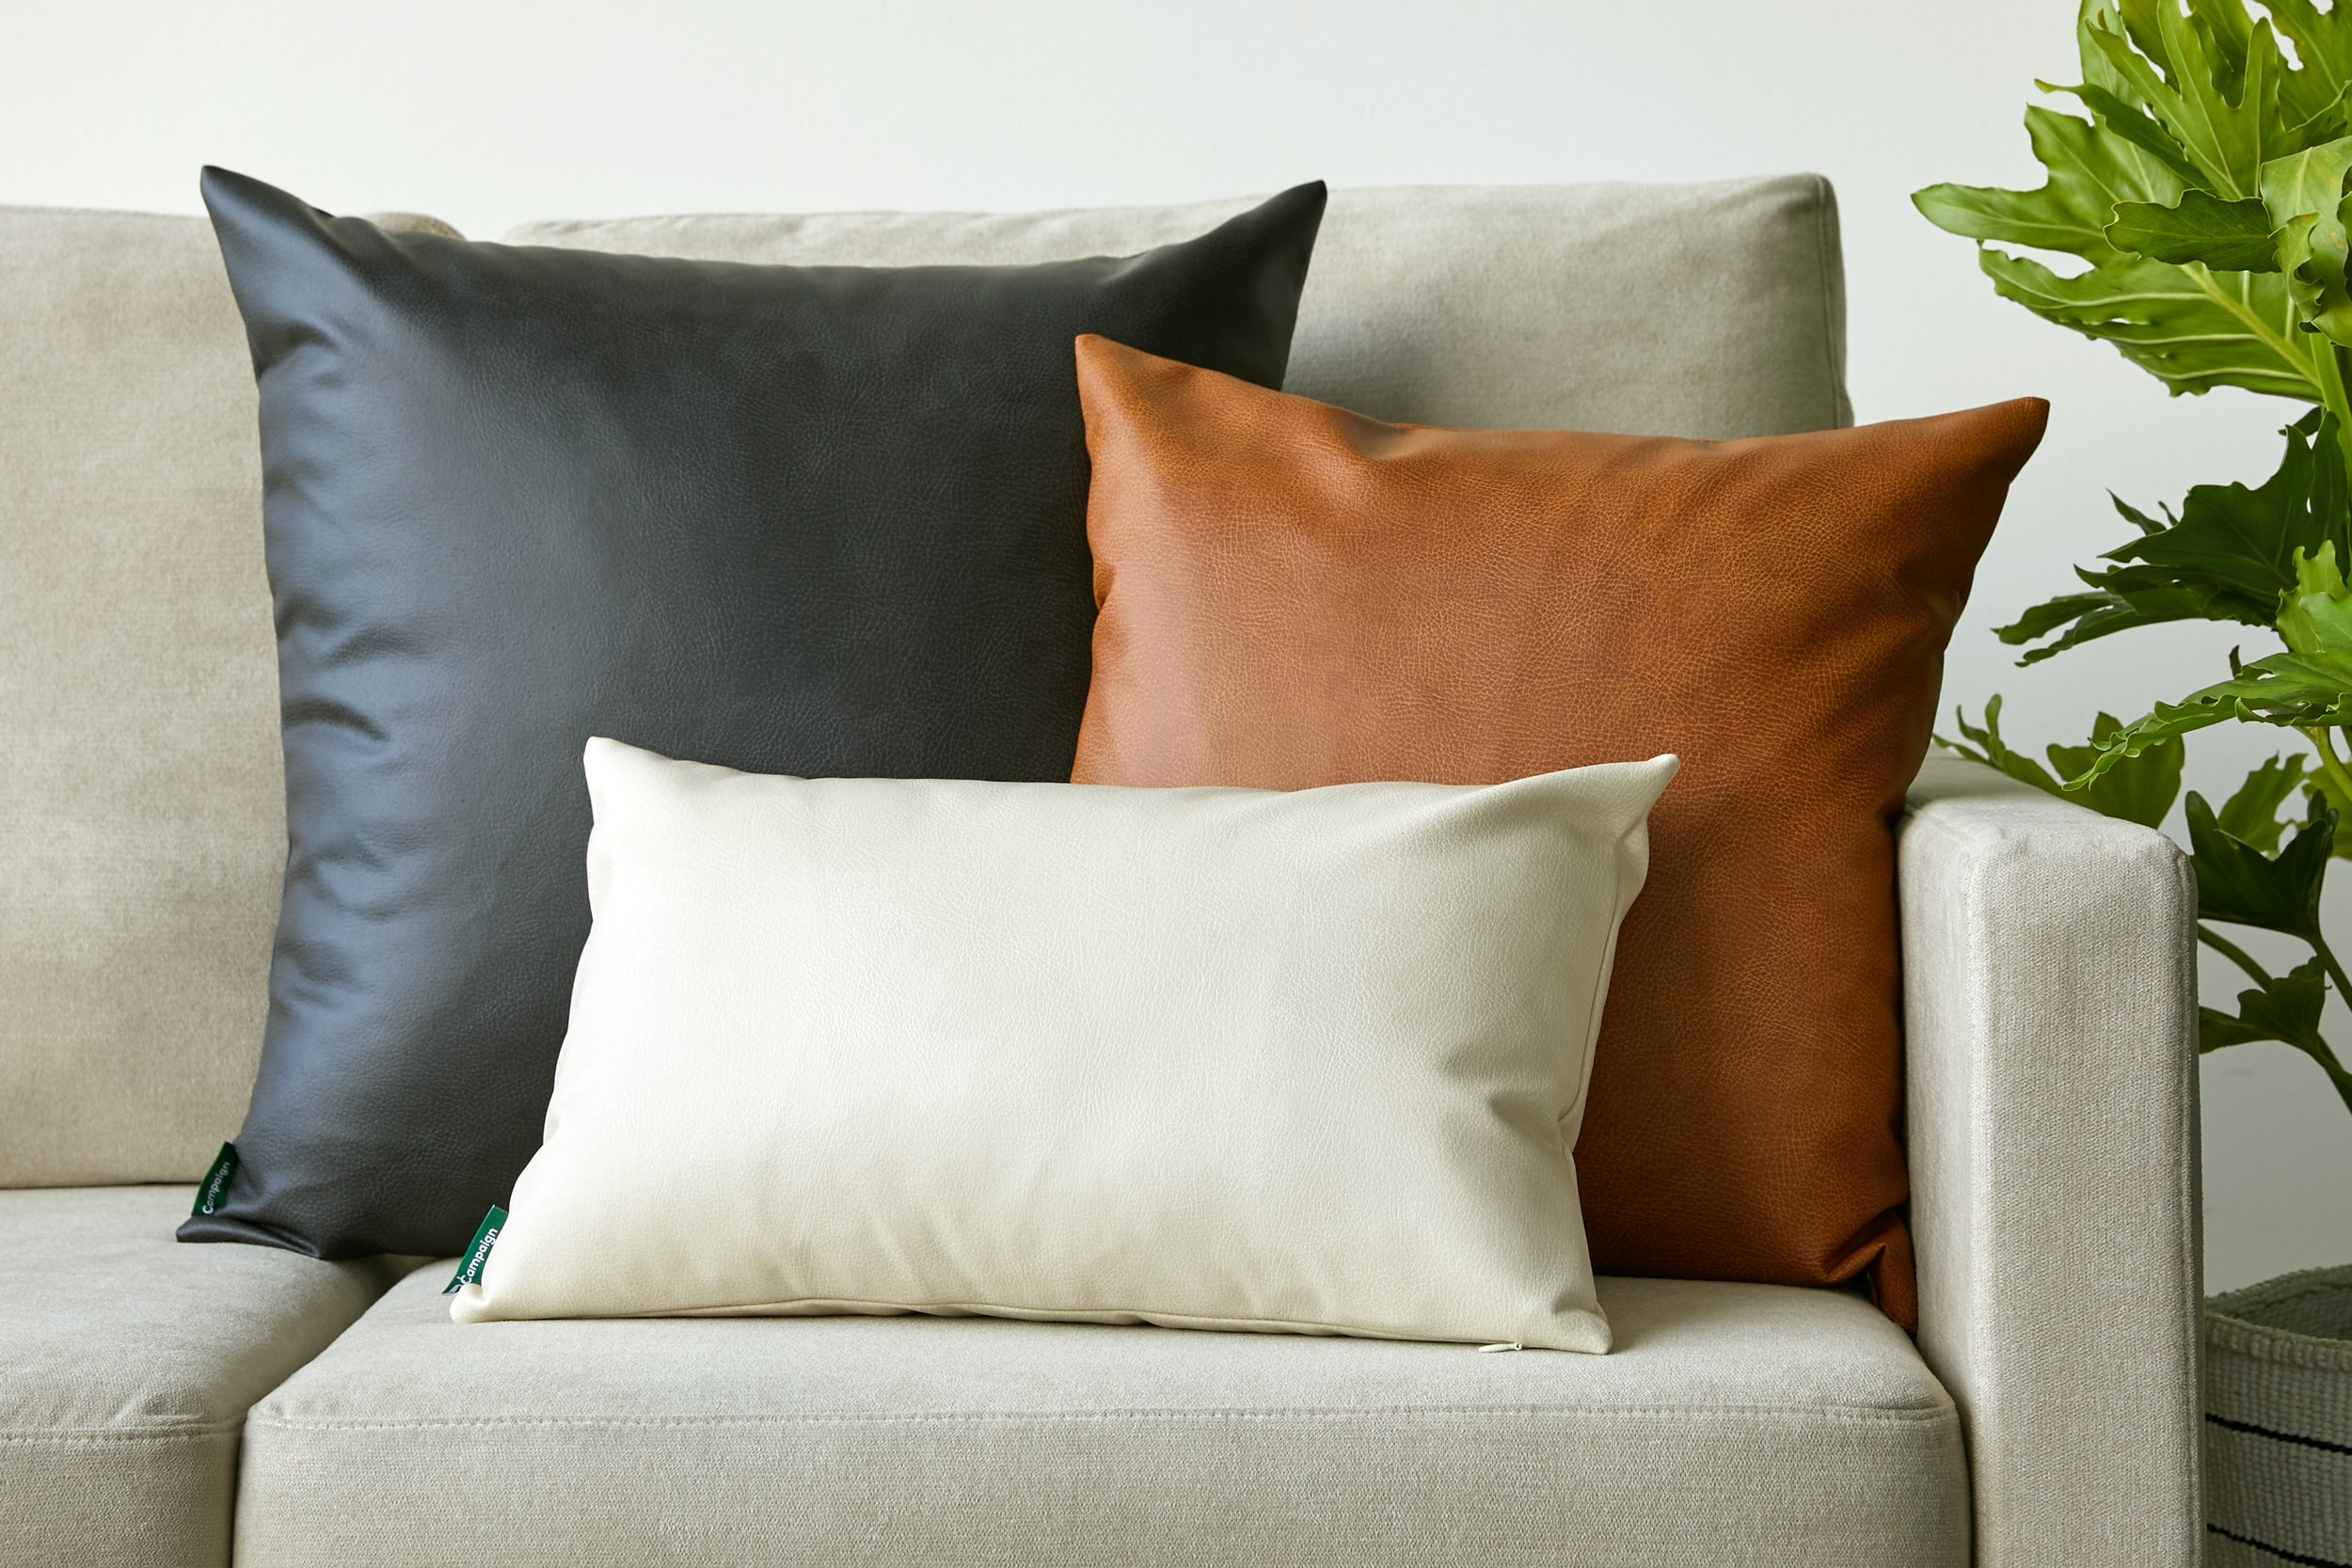 Vegan Leather Pillows Ethical Decorative Throw Pillows By Campaign